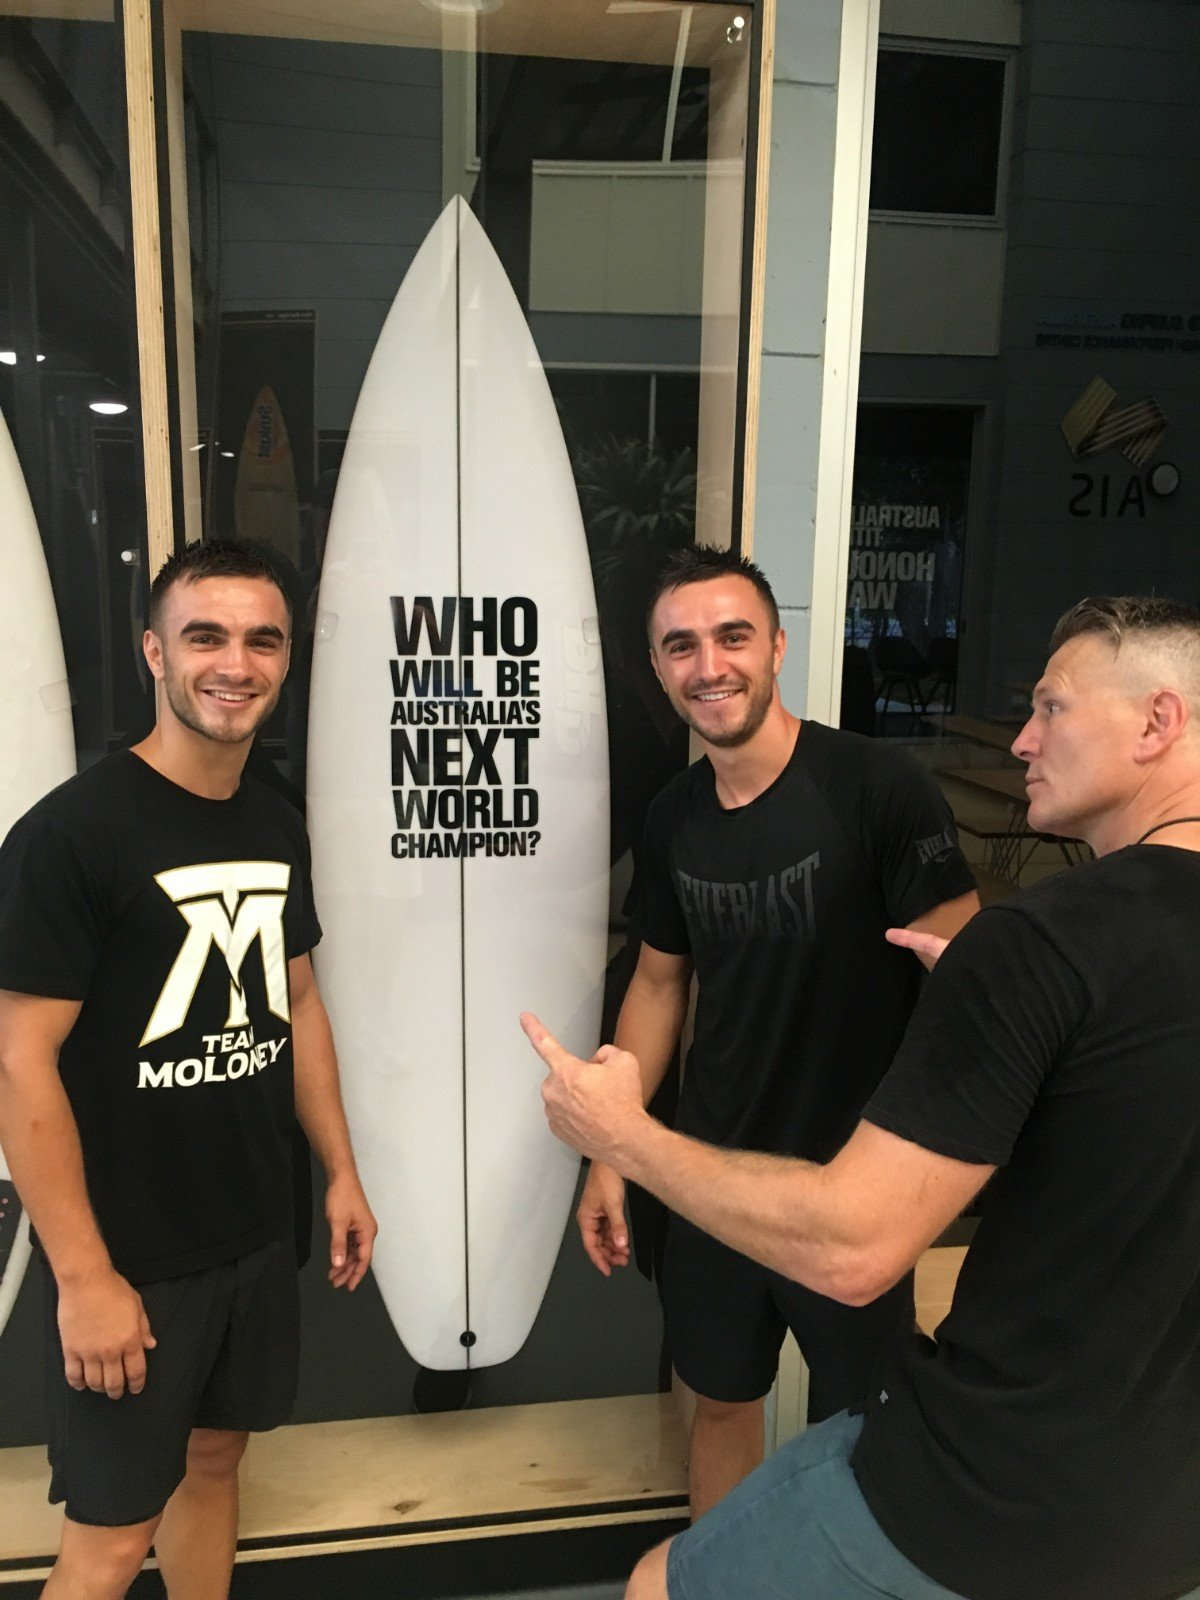 Andrew Moloney, Jason Moloney - Andrew Moloney and twin brother Jason Moloney took part in a week long Bell Partners high performance 5 day corporate training course with multi Time World Champion Danny Green and Australian cricketing icon Michael Clarke.